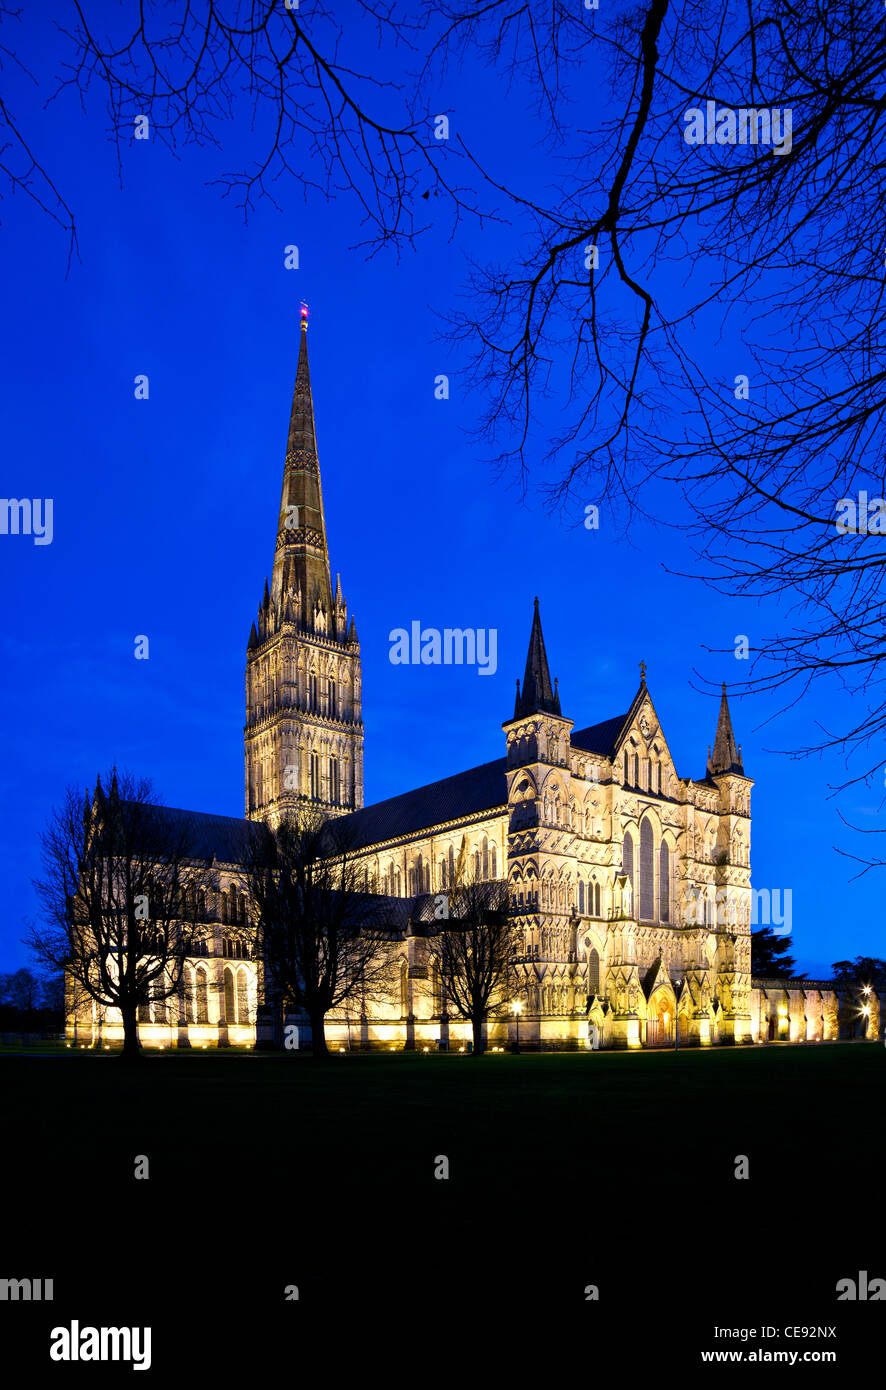 The floodlit west front and spire of medieval Salisbury Cathedral, Wiltshire, England, UK at twilight. - Stock Image